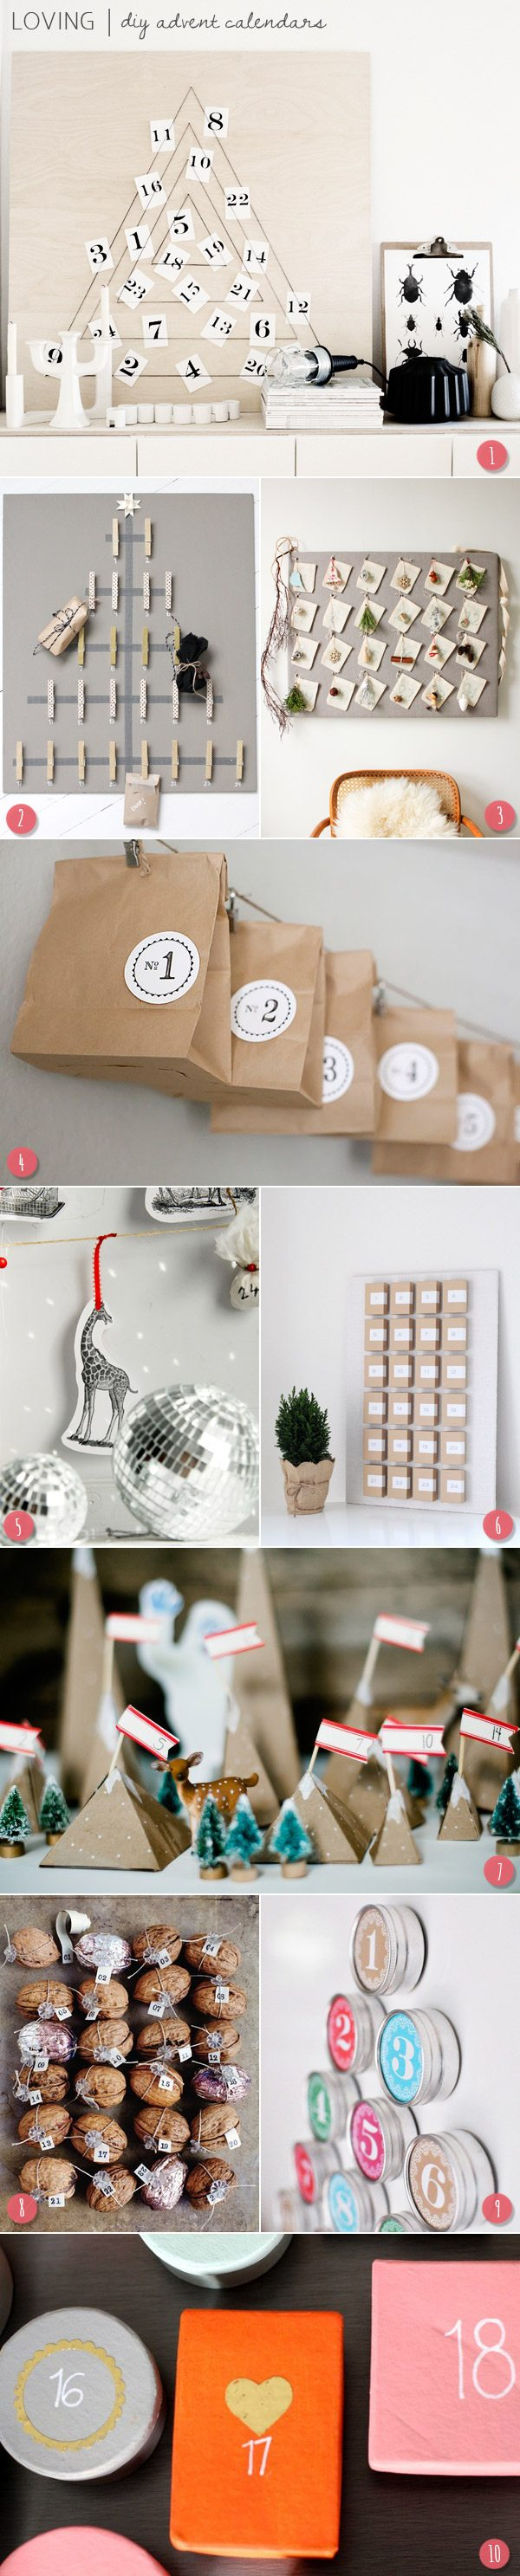 DIY advent calendars | The Sweetest Occasion